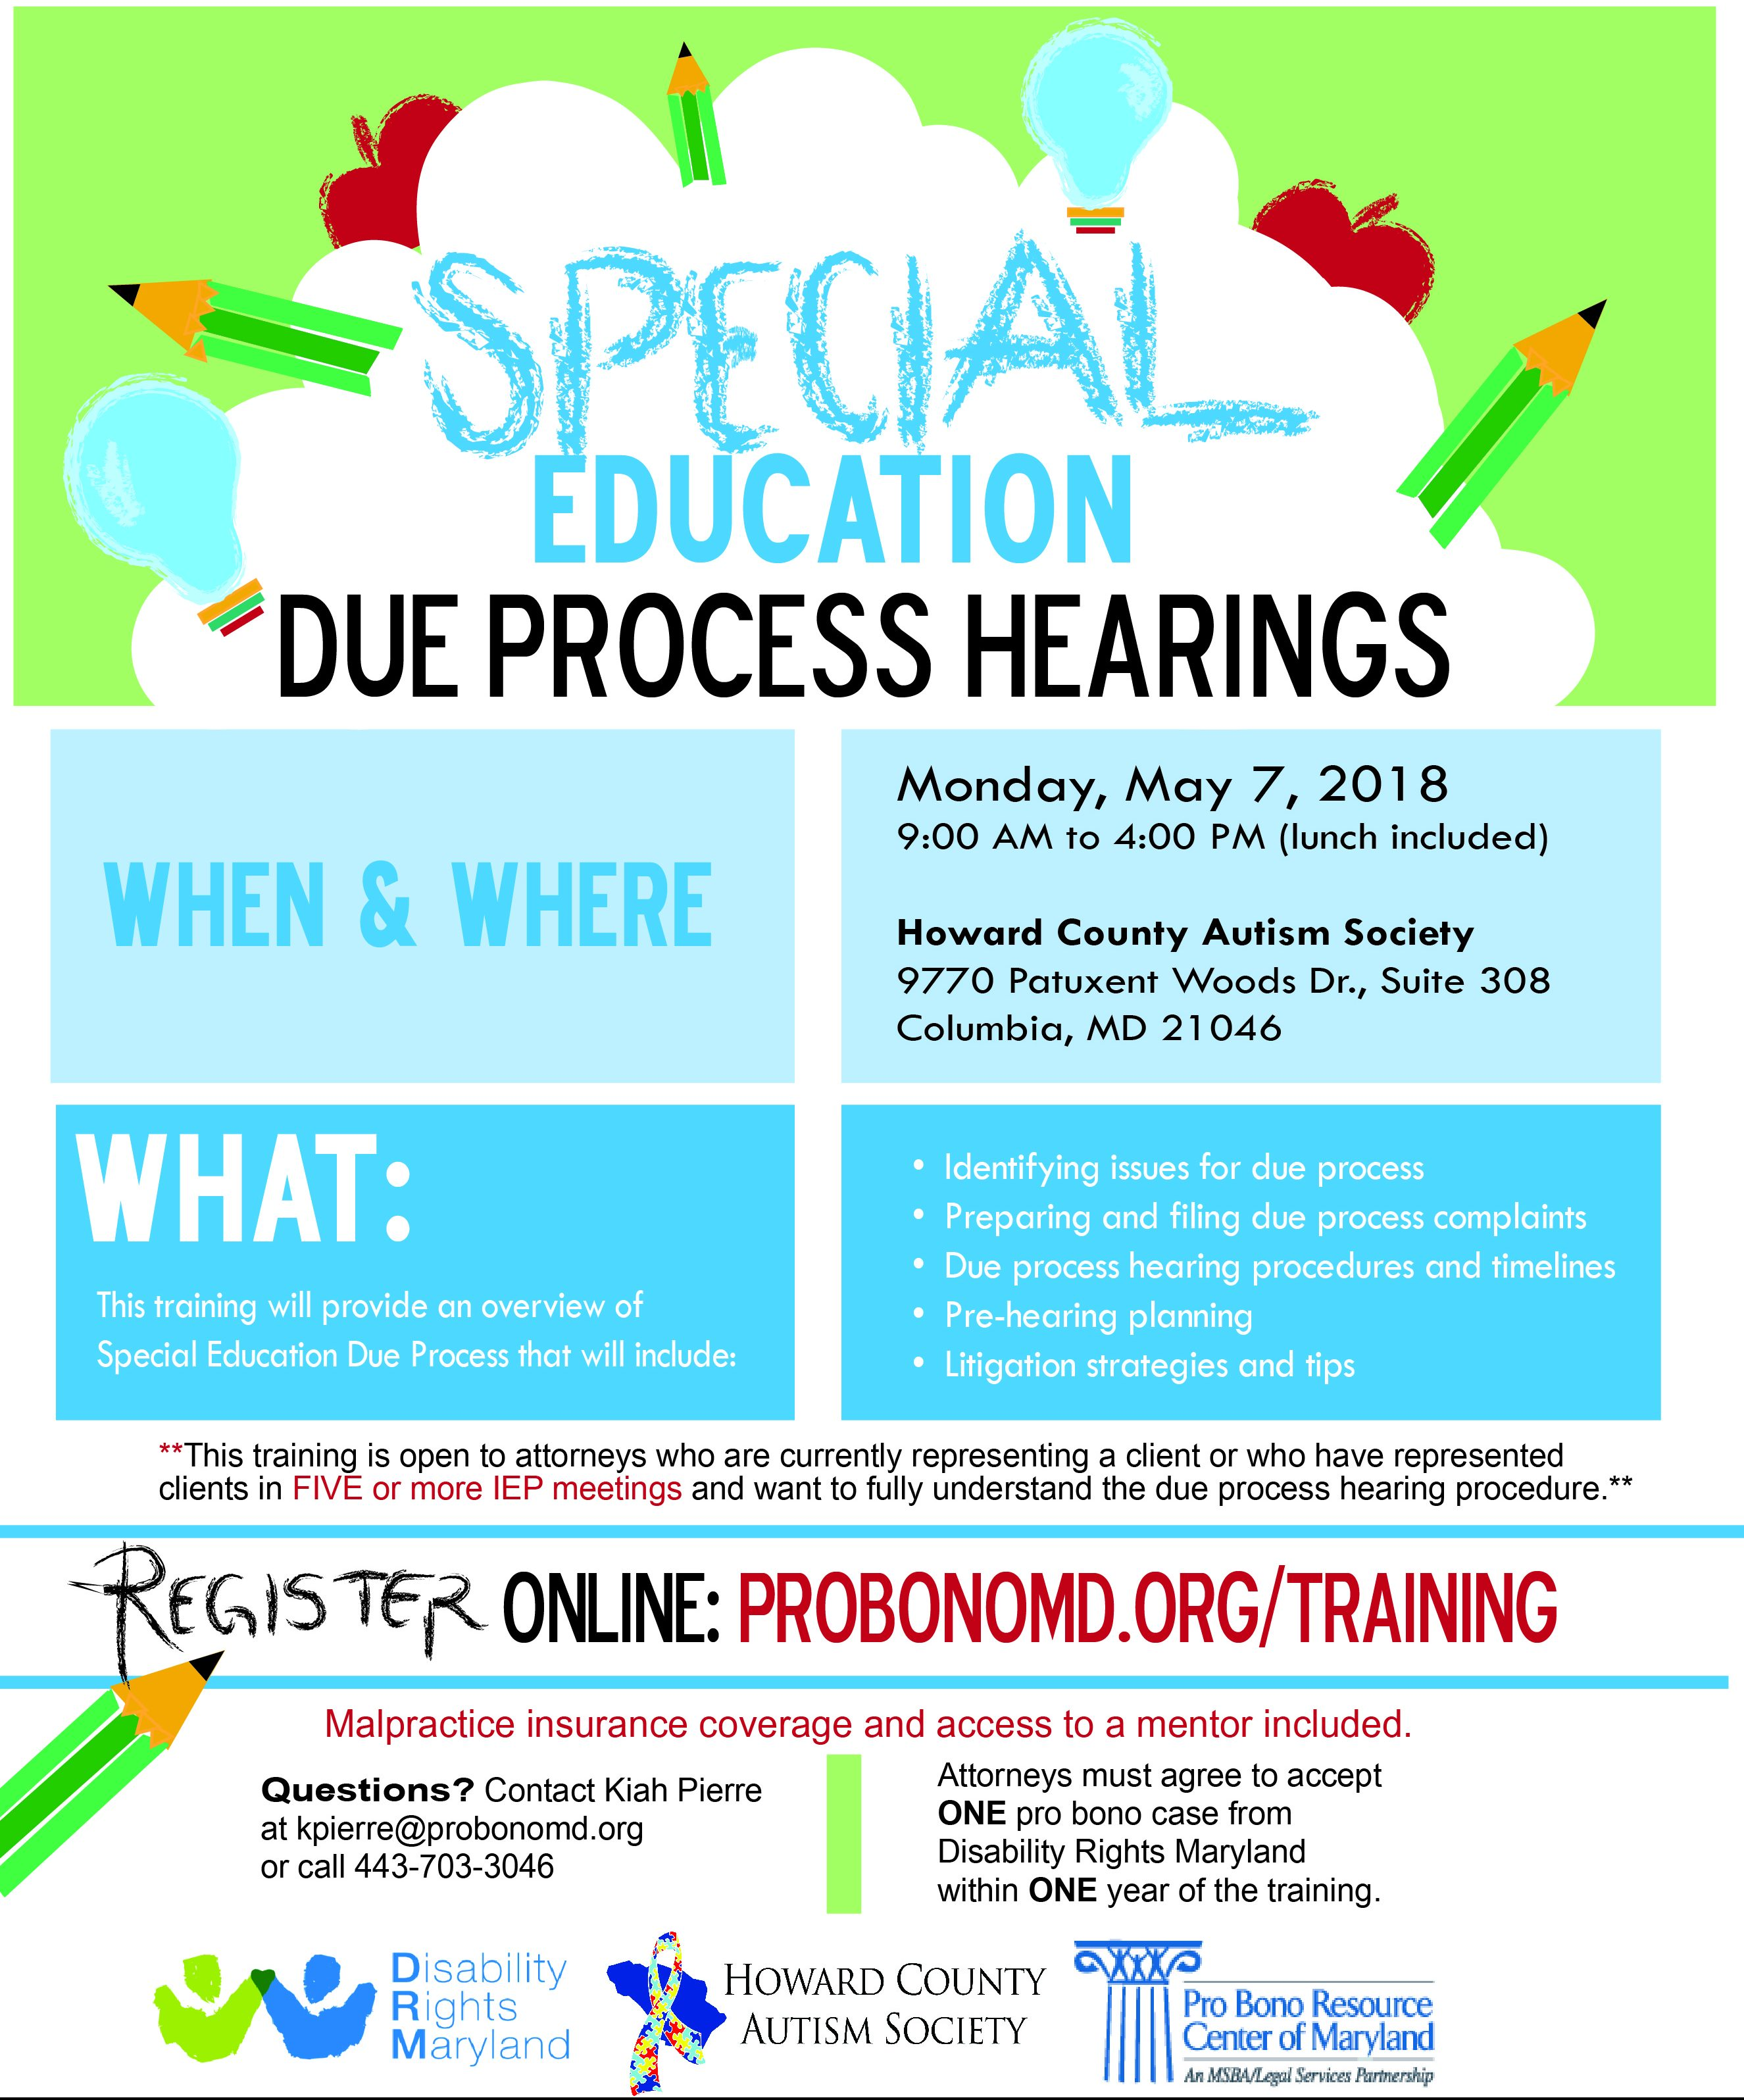 Special Education Training Efforts To >> Special Education Due Process Hearings Pro Bono Resource Center Of